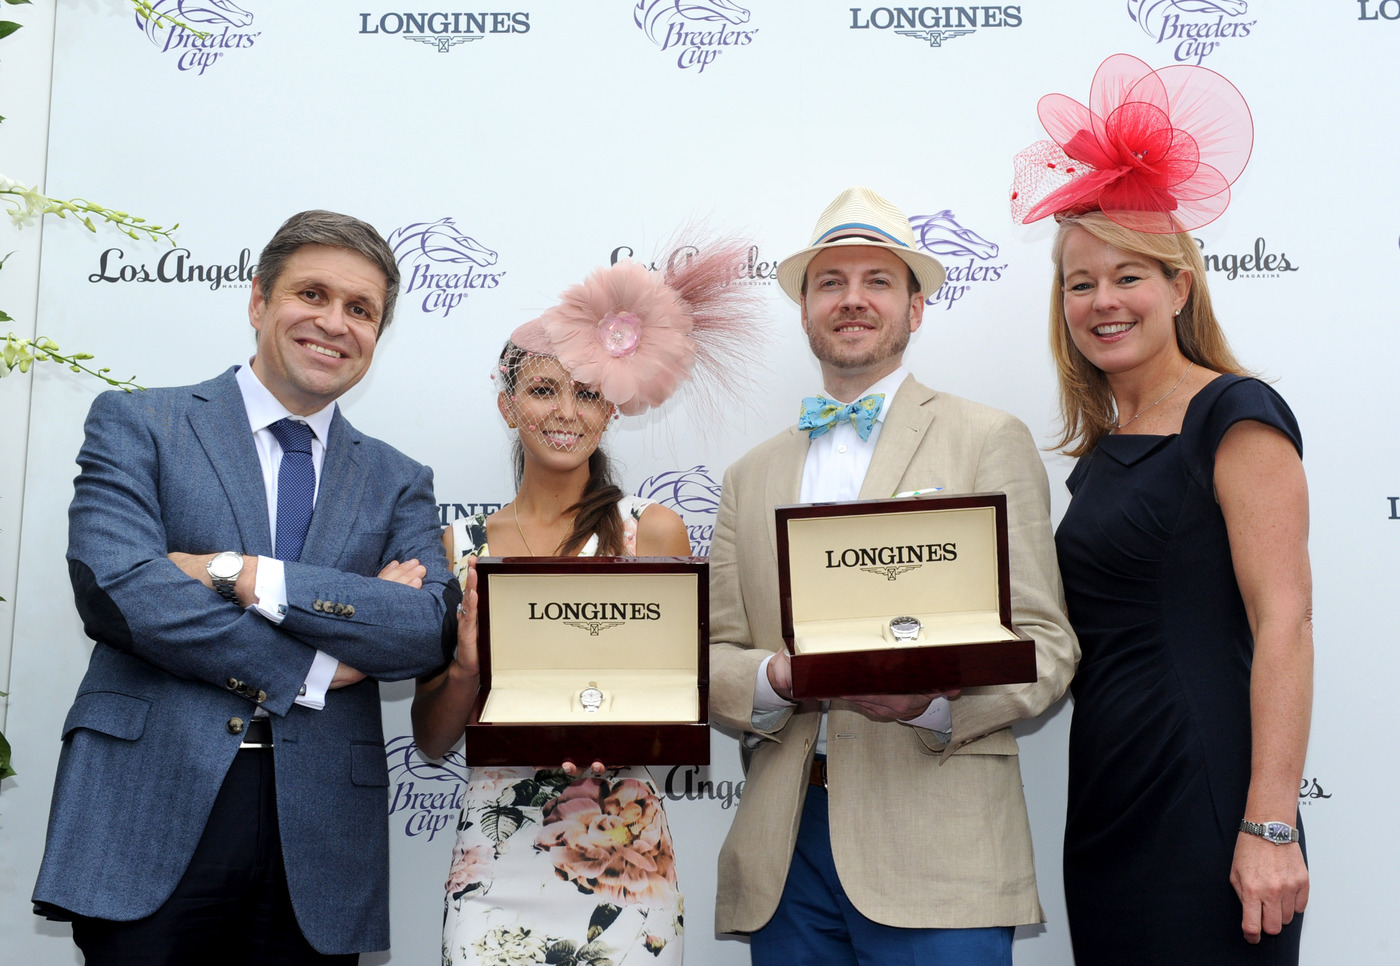 Longines Flat Racing Event: Longines Times the Breeders' Cup World Championships 8